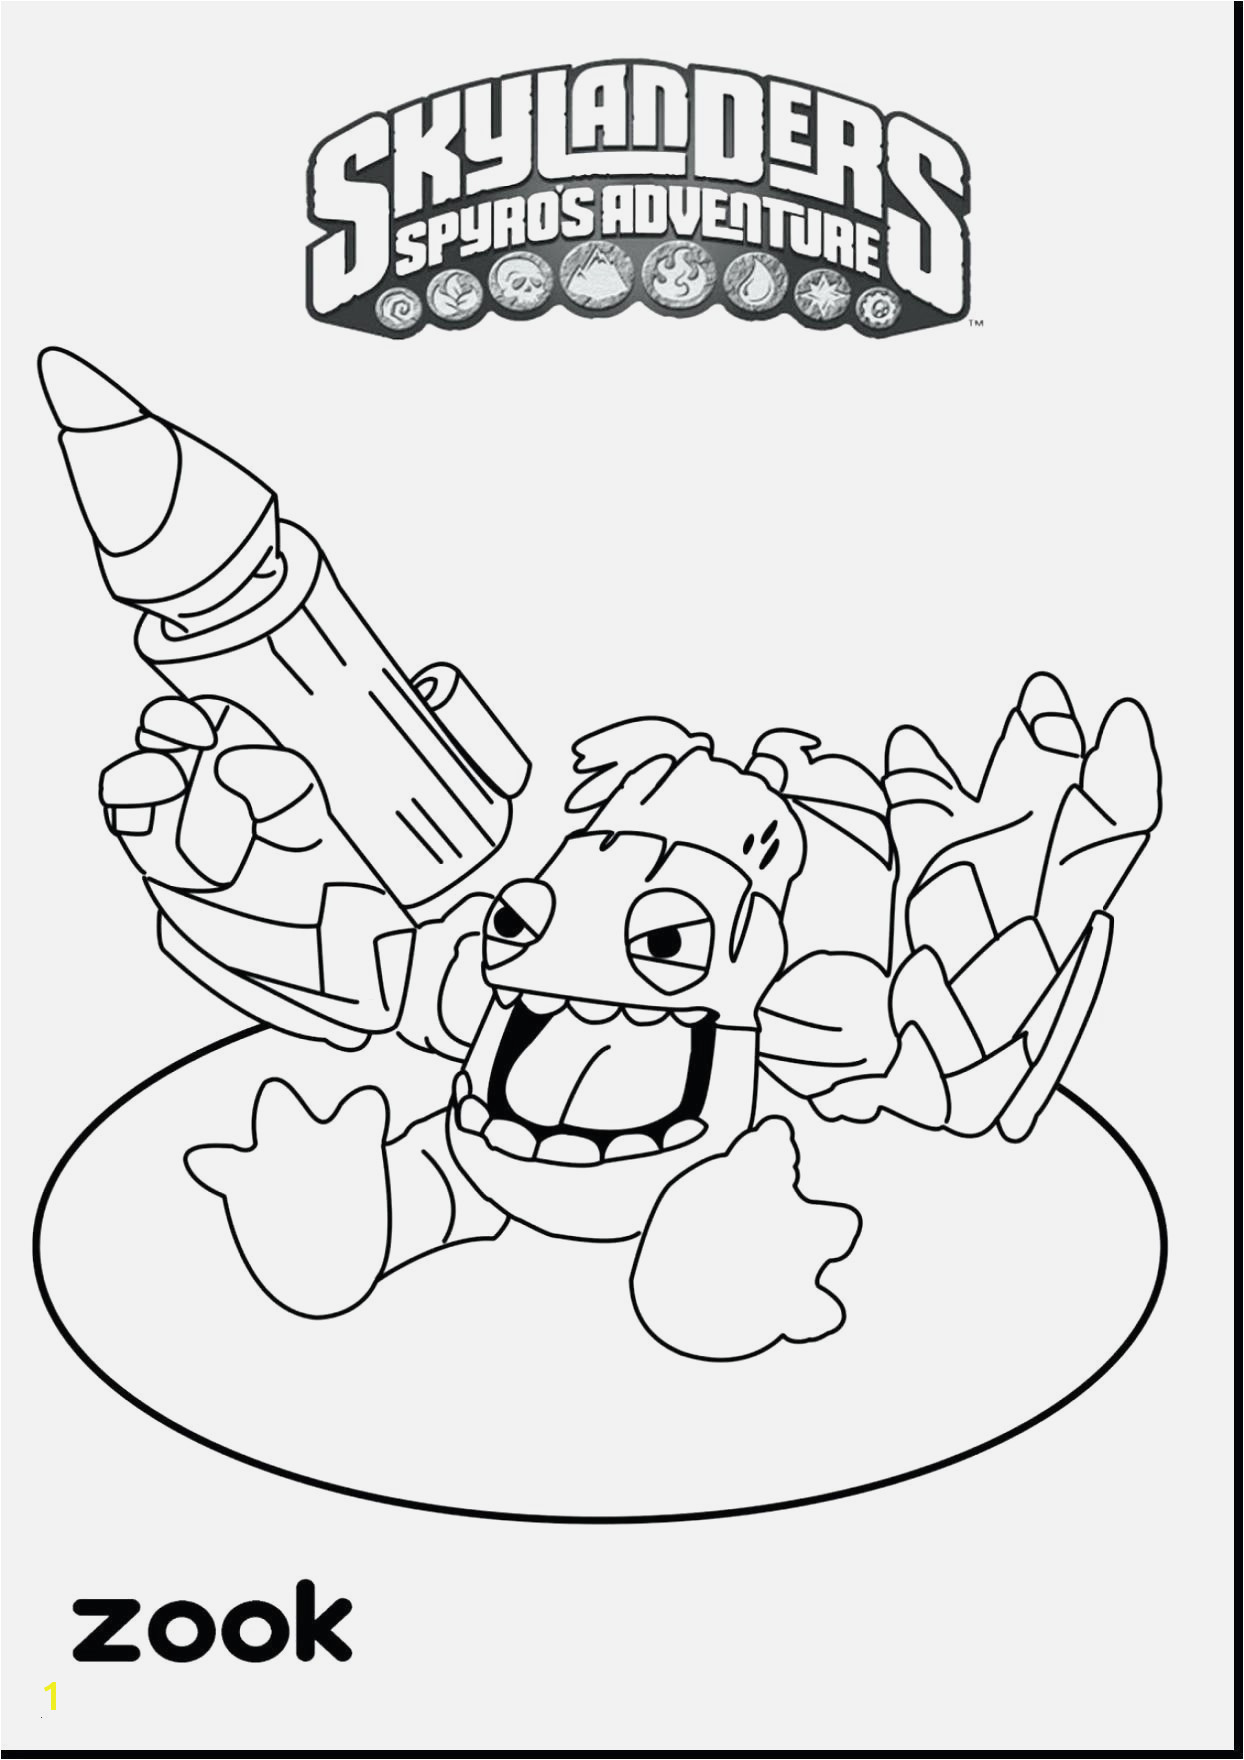 Disney Coloring Free Printable Disney Coloring Pages for Adults Disney Coloring Download and Print for